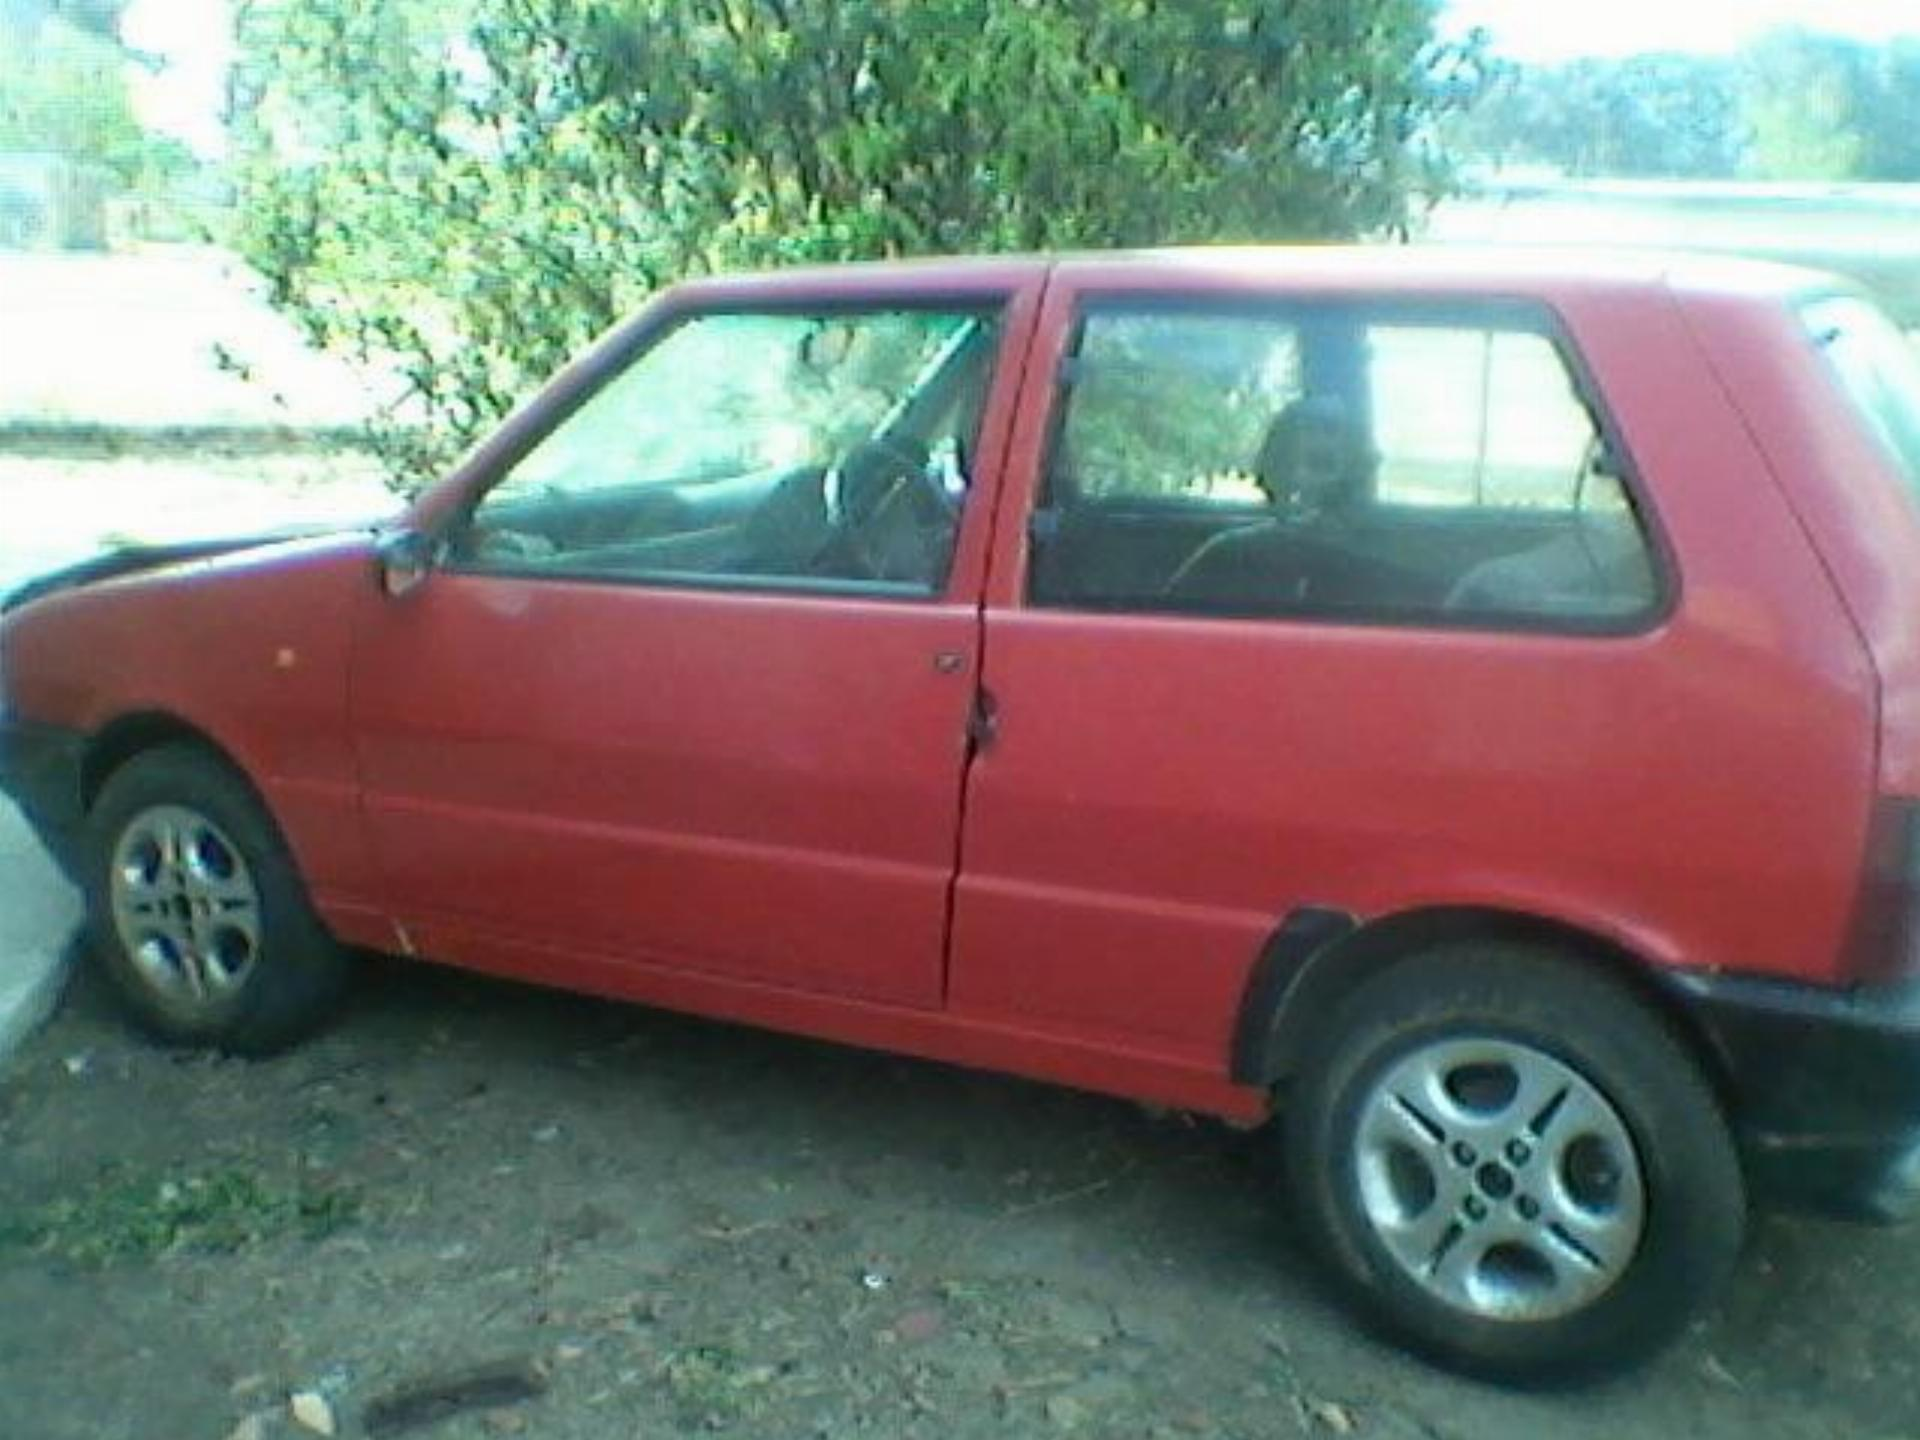 Used Fiat Uno Mia 1100 3D 1993 on auction - PV1003679